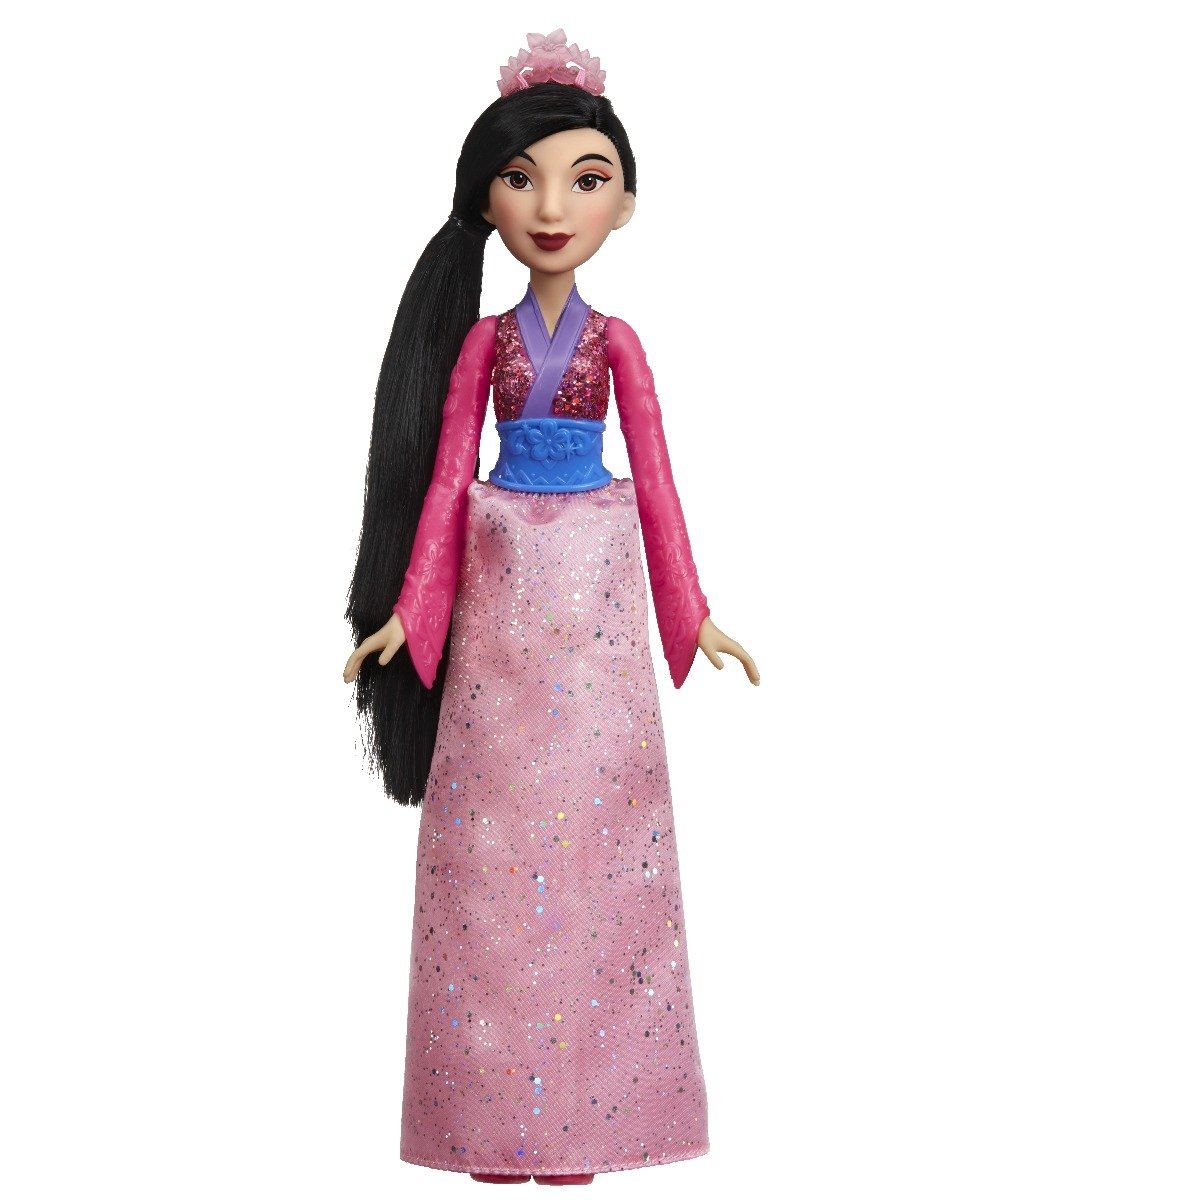 Papusa Disney Princess - Shimmer Fashion - Mulan